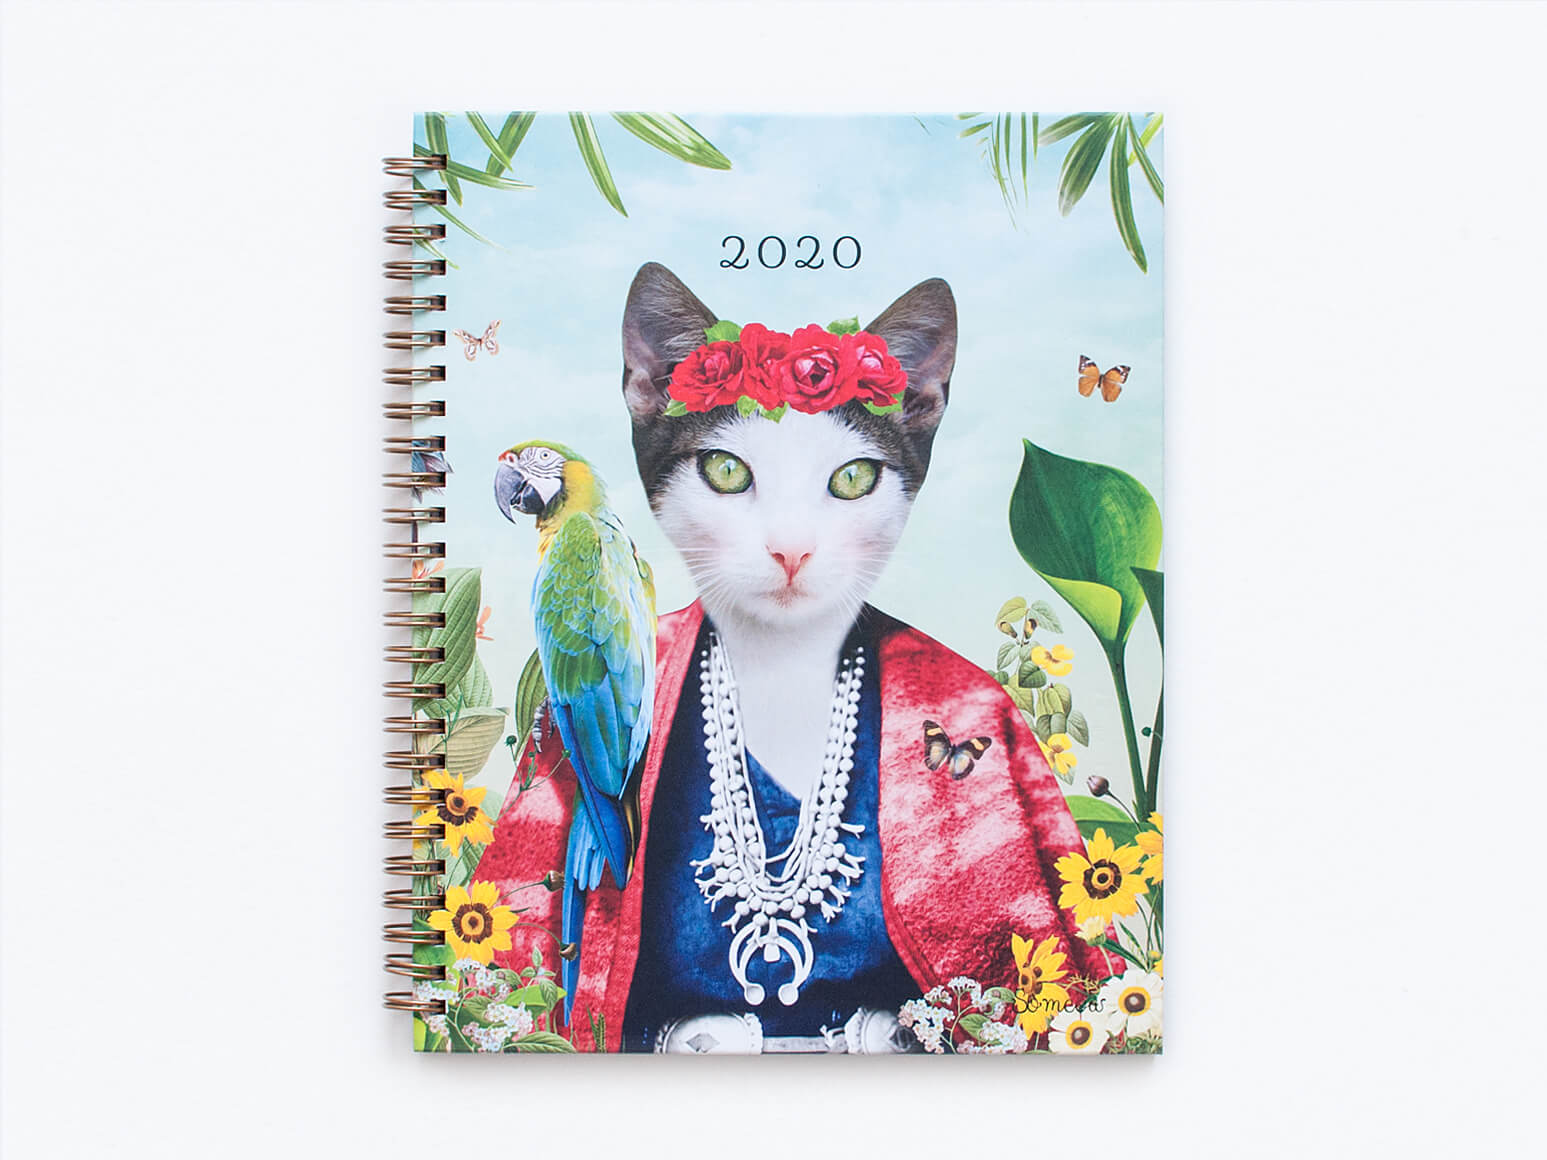 Agenda chat 2020 Frida par So Meow